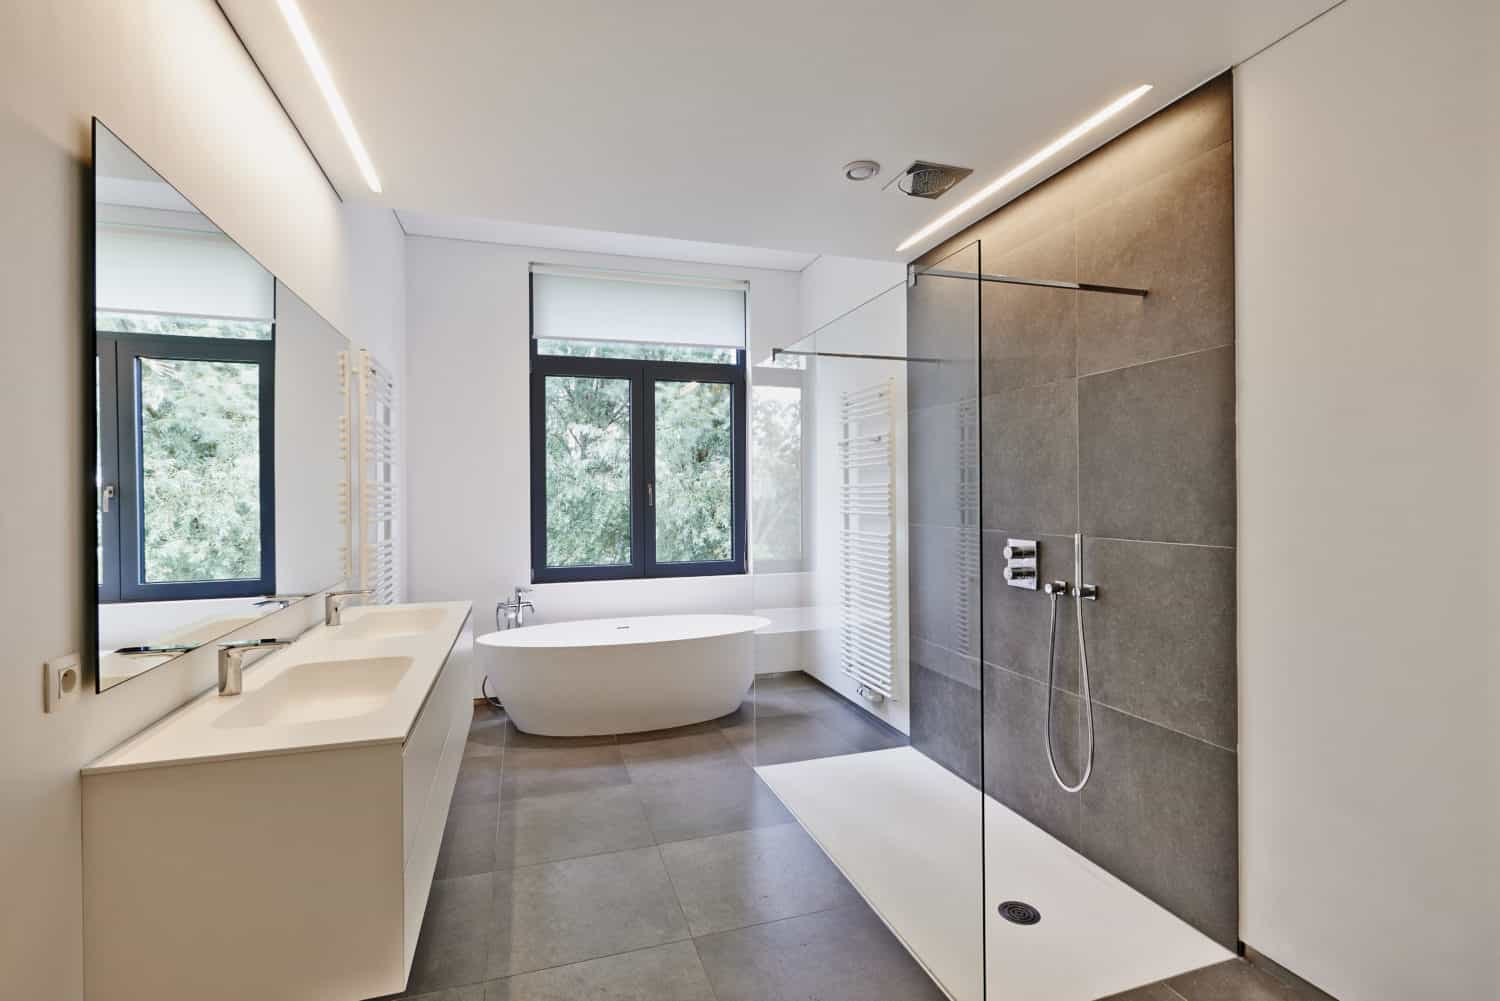 Your average bathroom cleaning tips taken to the next level house cleaning tips and tricks - Badkamer ambiance ...